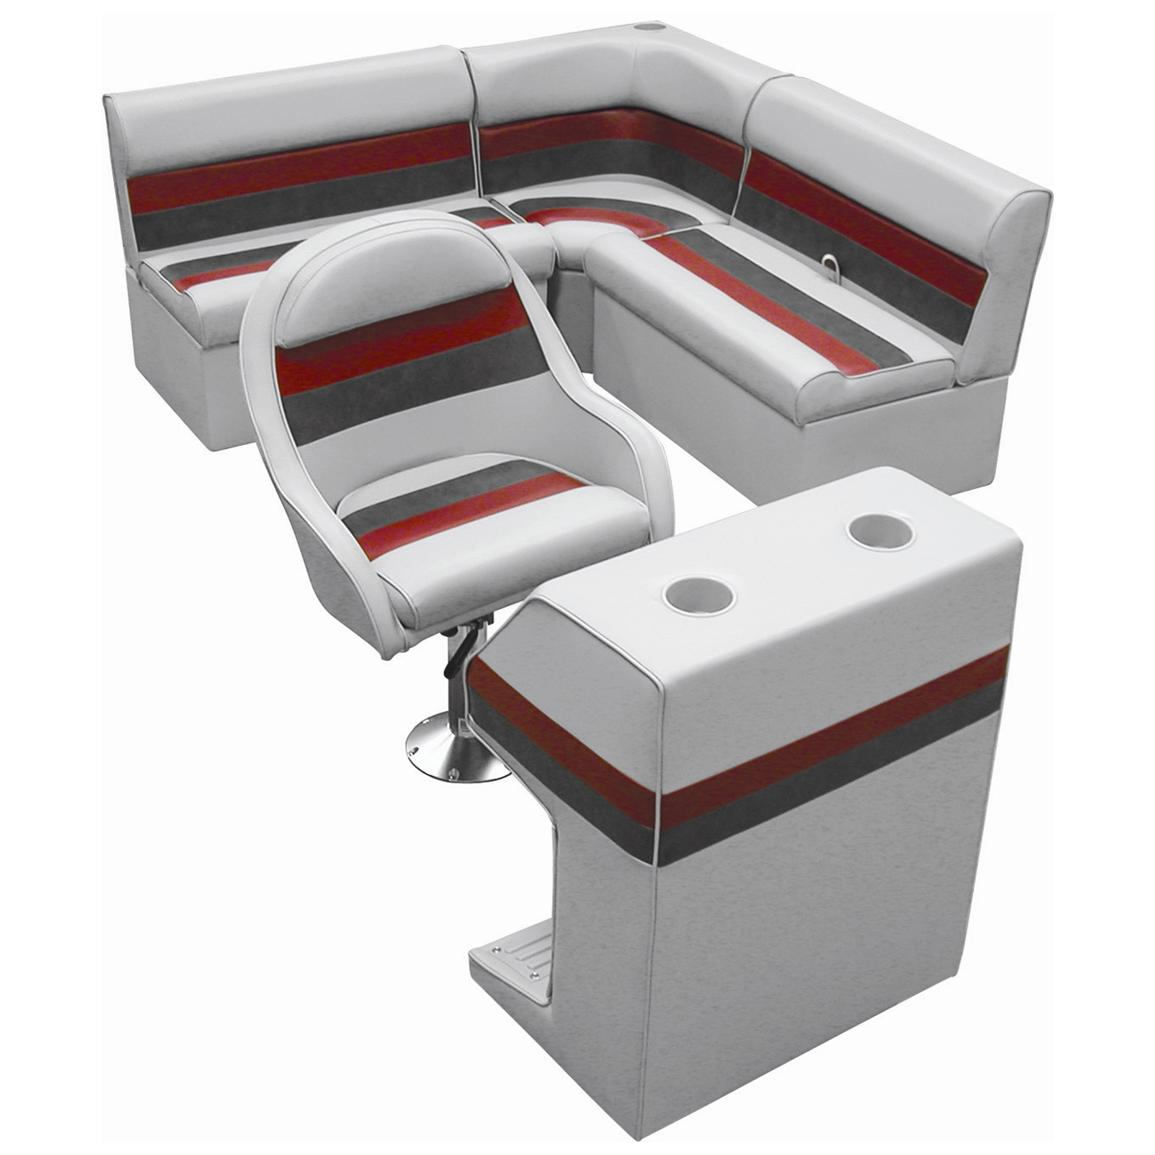 Wise® Rear Group Deluxe Pontoon Boat Seat (D) Style Seating, Light Grey / Red / Charcoal